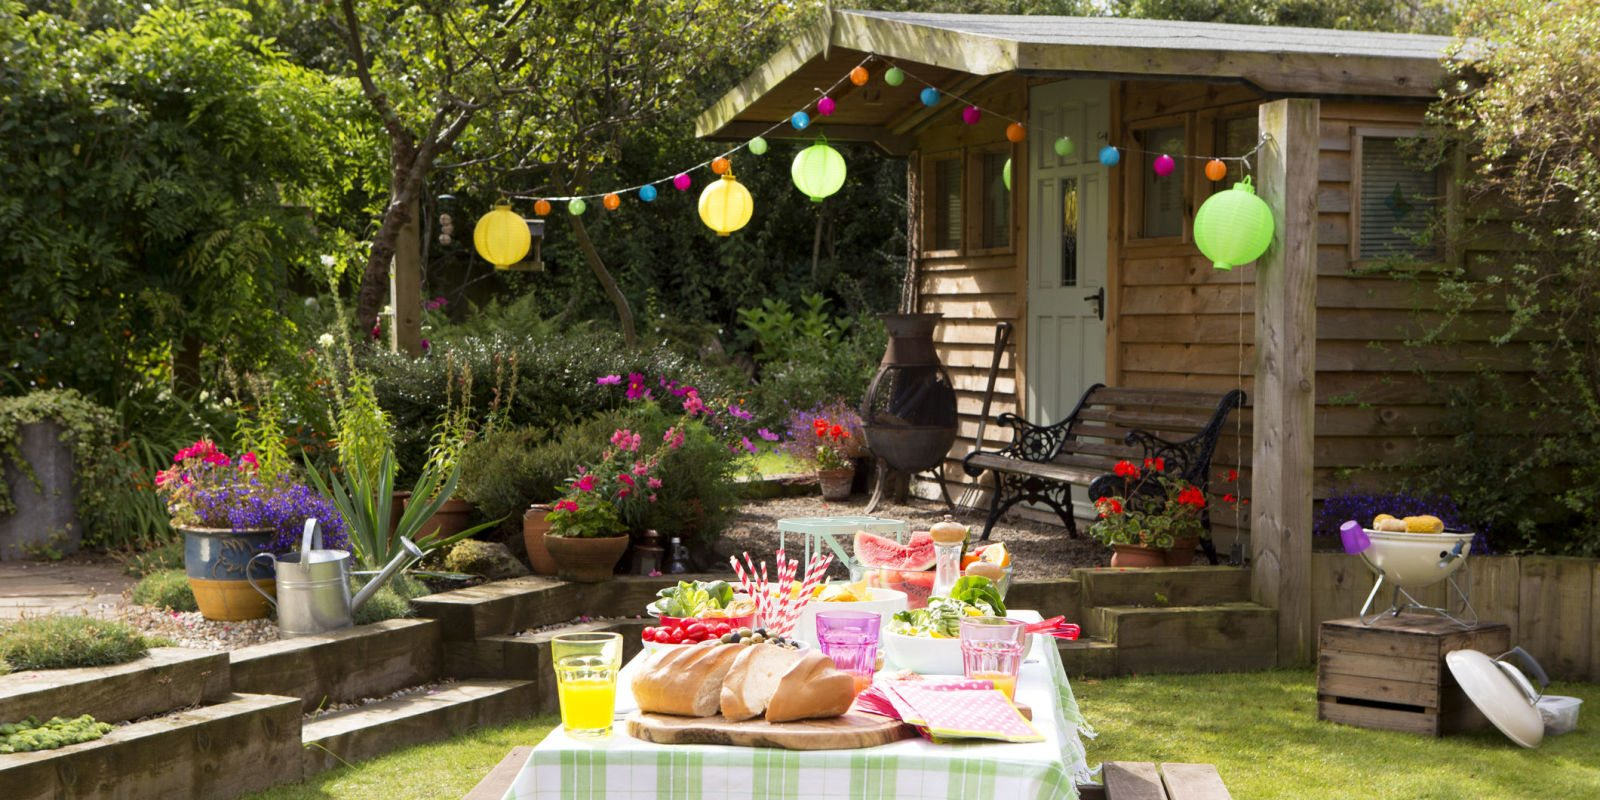 Apartment Decorating Ideas Host The Perfect Summer Bbq With The Help Of Smart Home